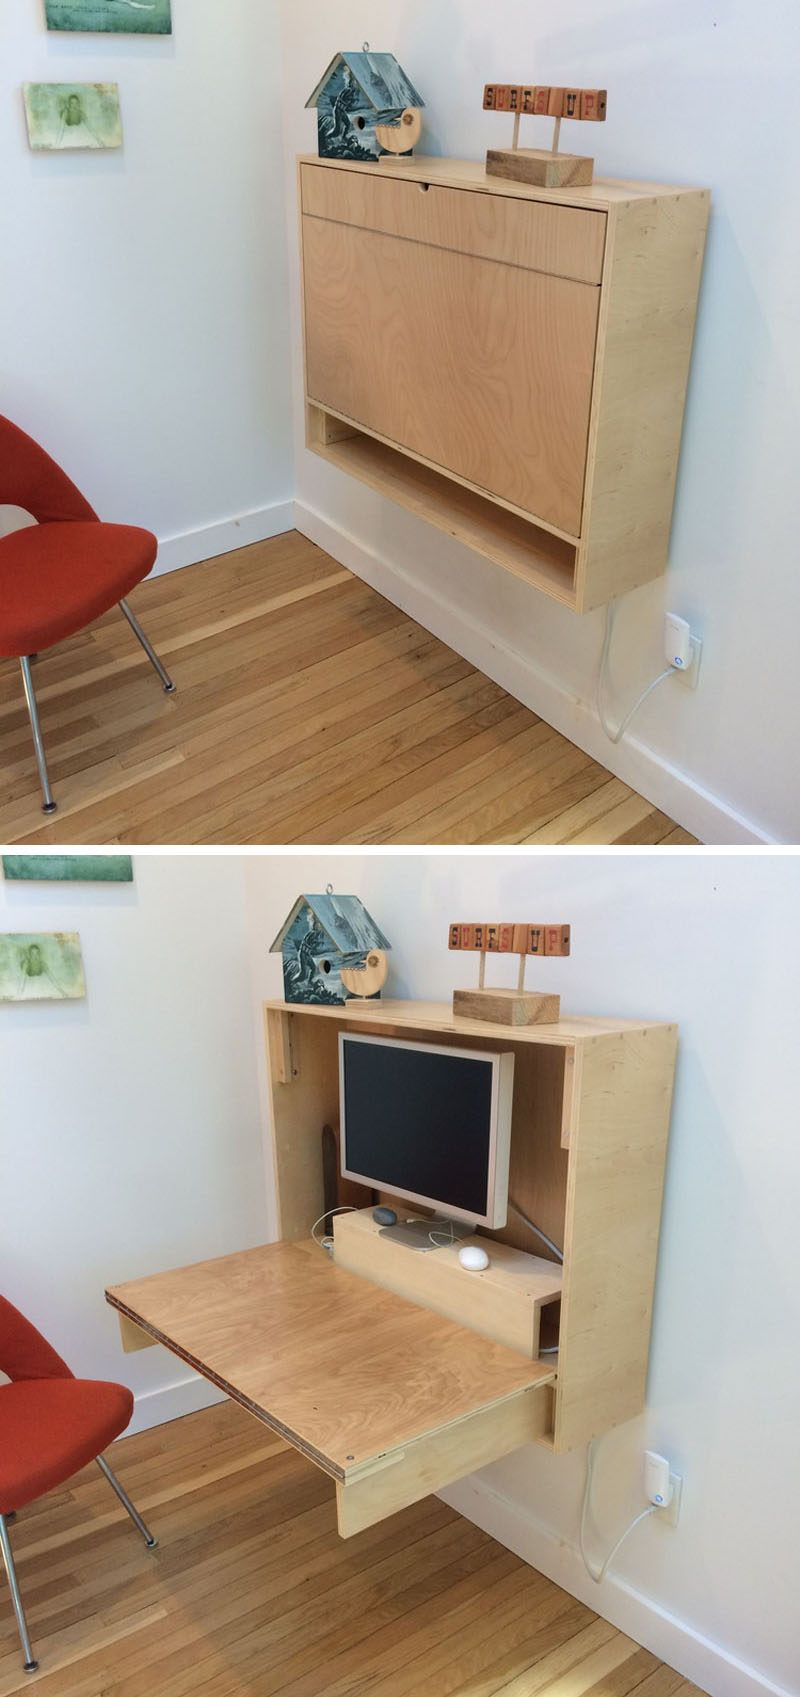 16 Wall Desk Ideas That Are Great For Small Spaces // If you\u0027re feeling ambitious you can also make your own custom fold up wall desk like this one to make ... & 16 Wall Desk Ideas That Are Great For Small Spaces | Tiny House ...